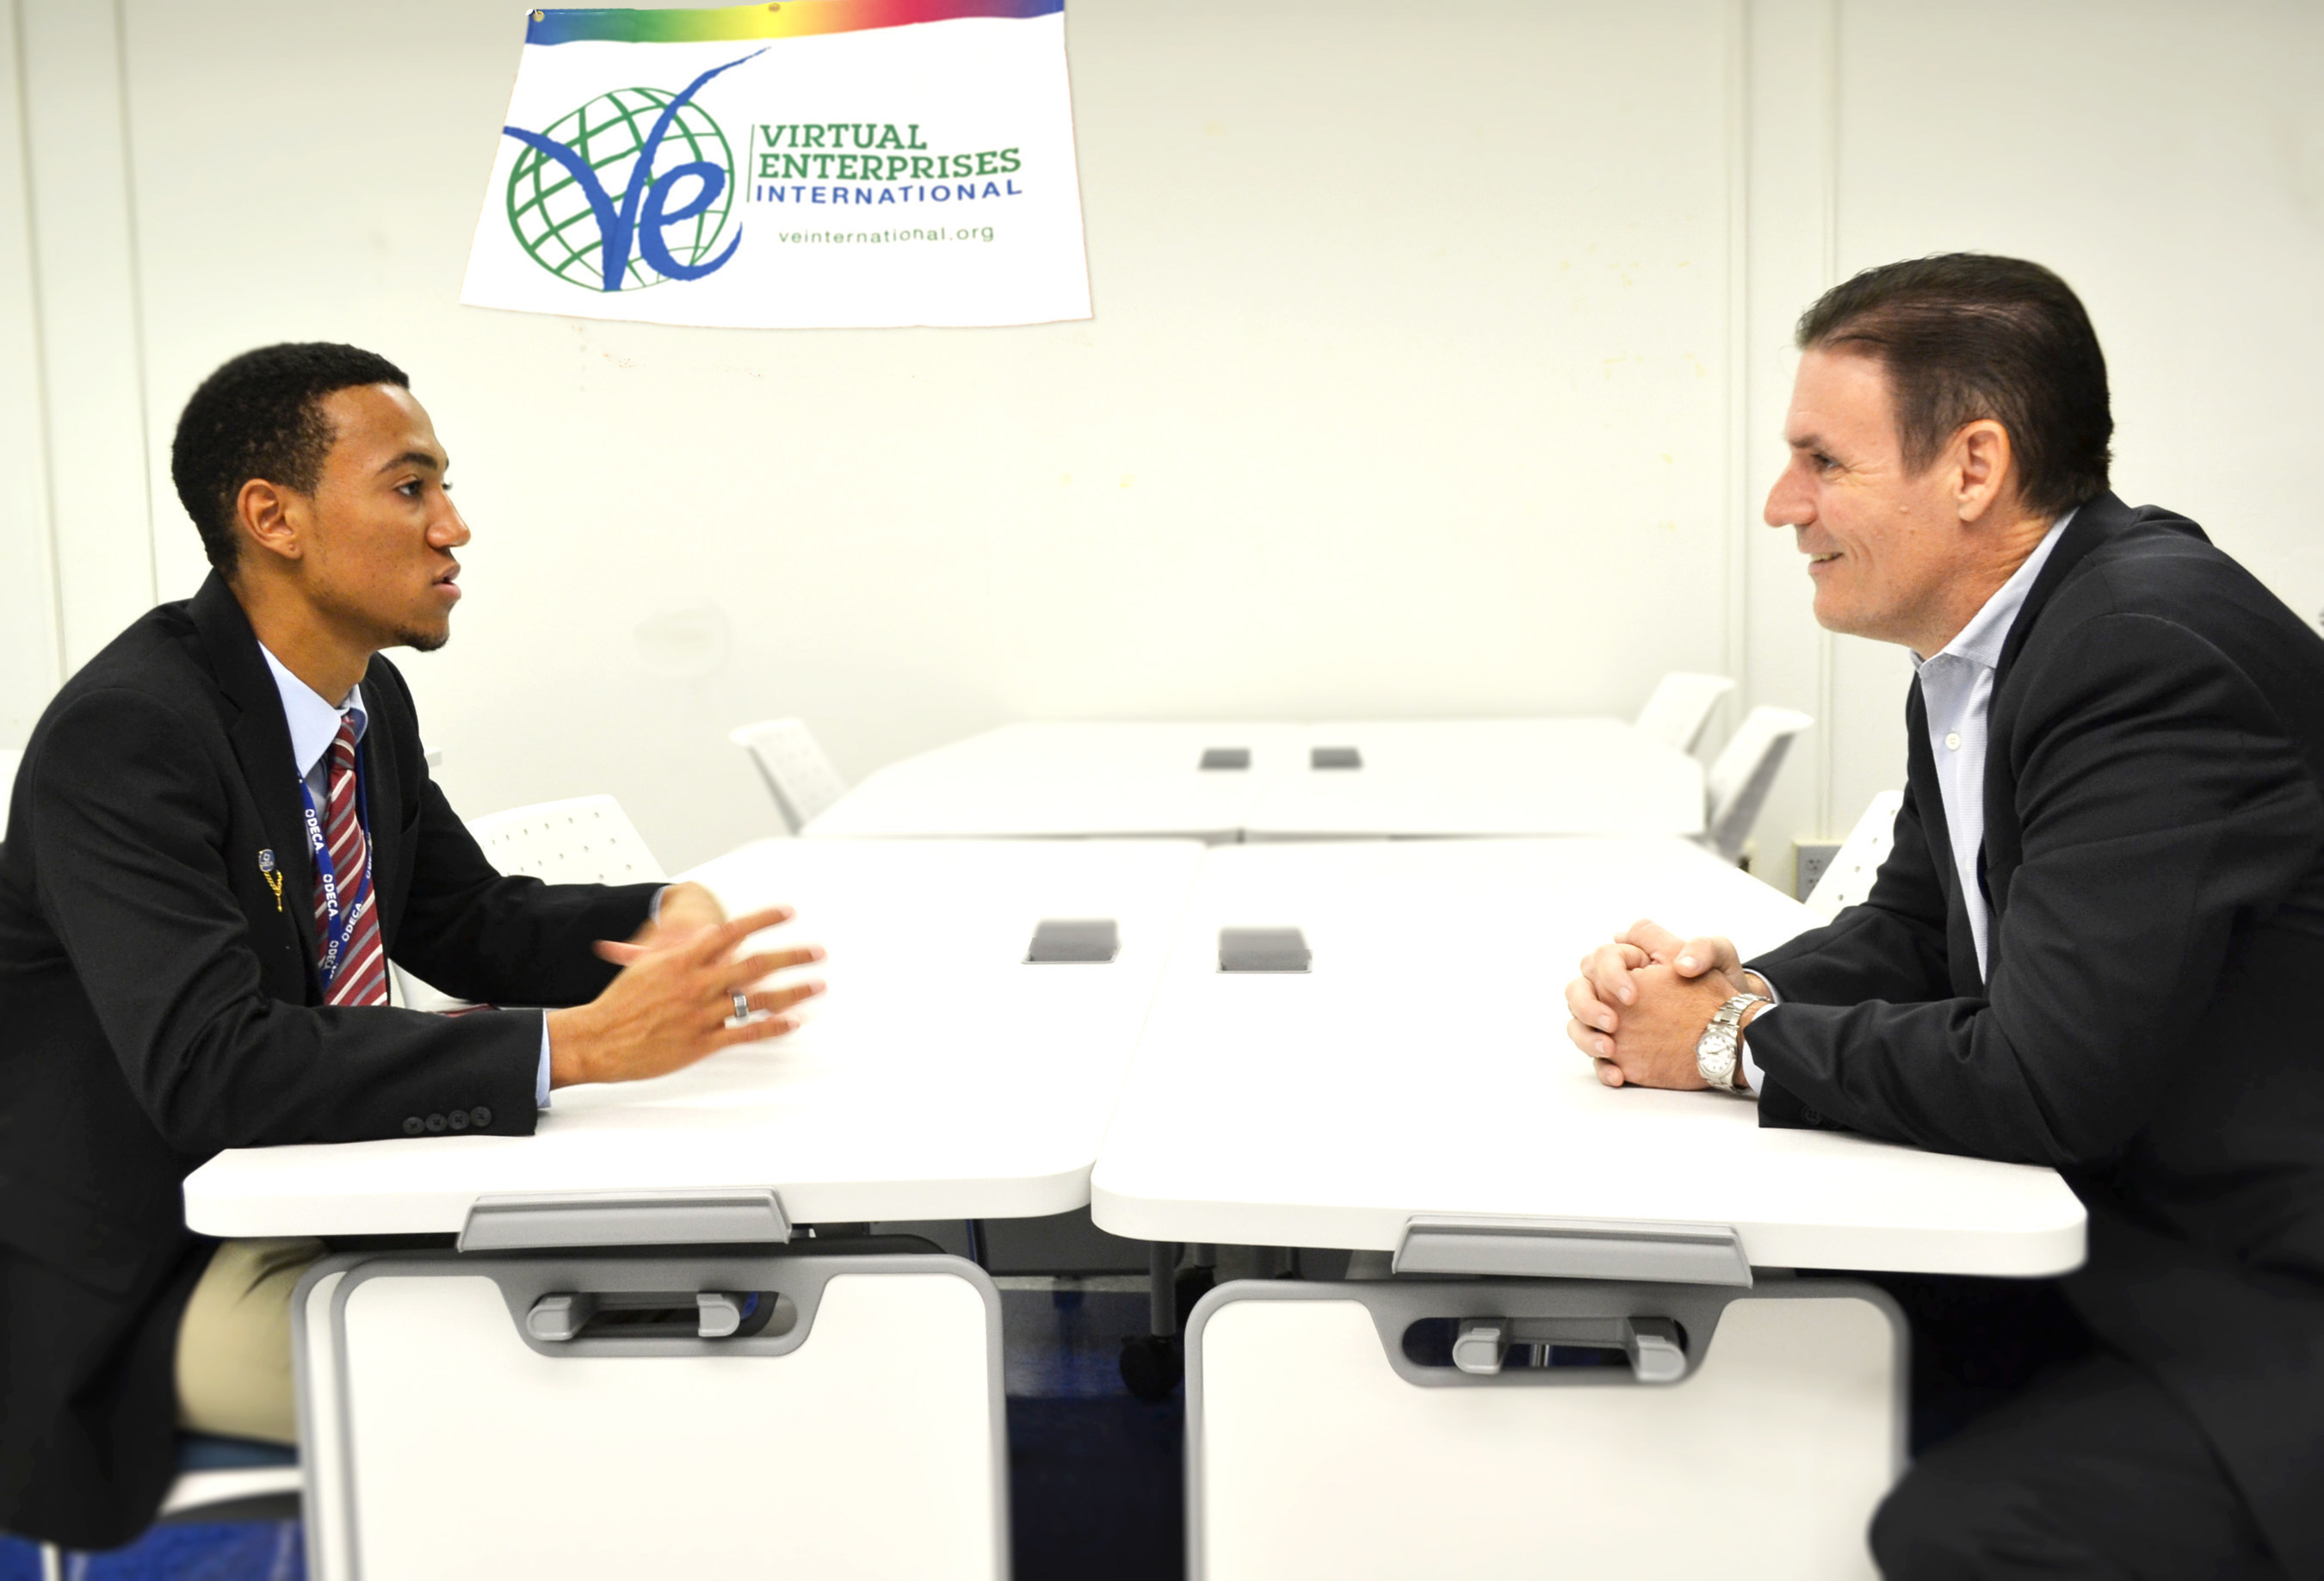 Digital Risk Co-founder & Managing Partner Jeff Taylor interviewing J.P. Taravella High School student Aaron Mitchell, newly elected CEO of the school's VEI program.